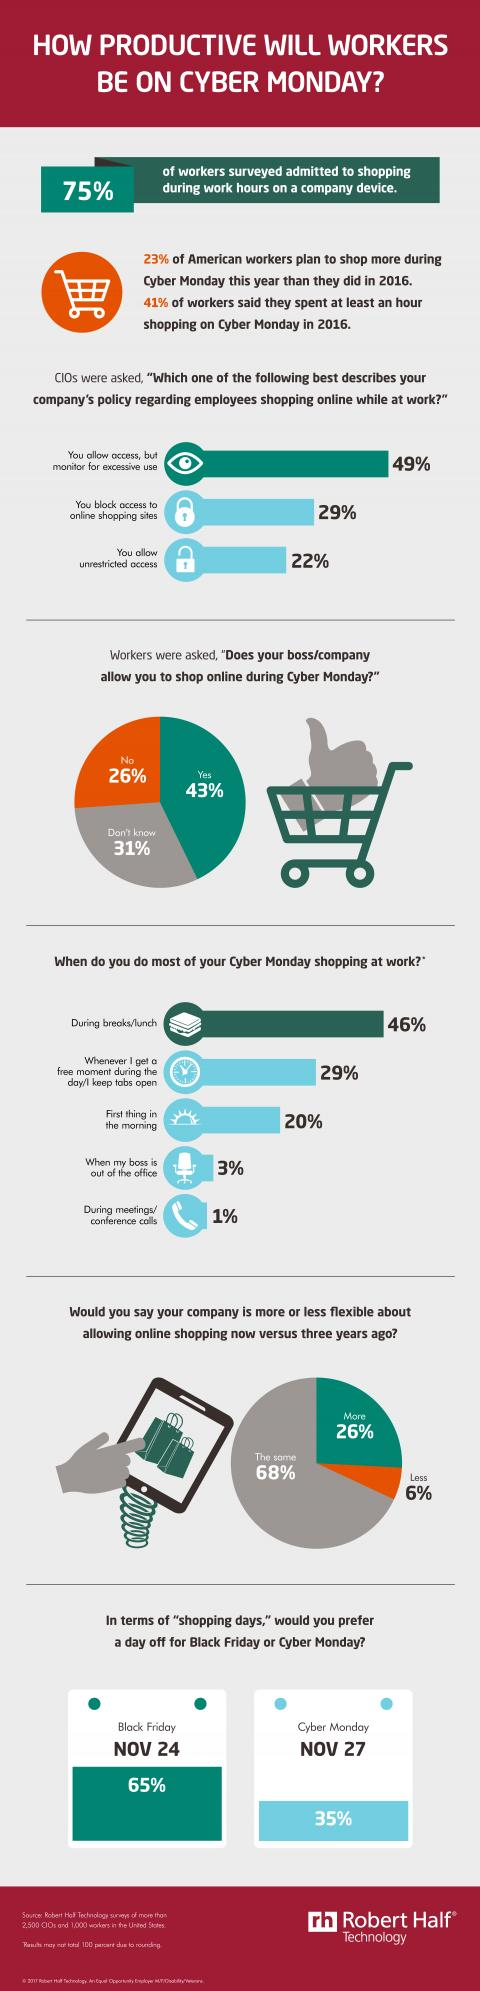 Find out how American workers plan to shop during Cyber Monday at work and whether they prefer Black Friday or Cyber Monday for their Holiday Shopping. You'll also learn from CIOs where they stand on allowing employees to shop at work.